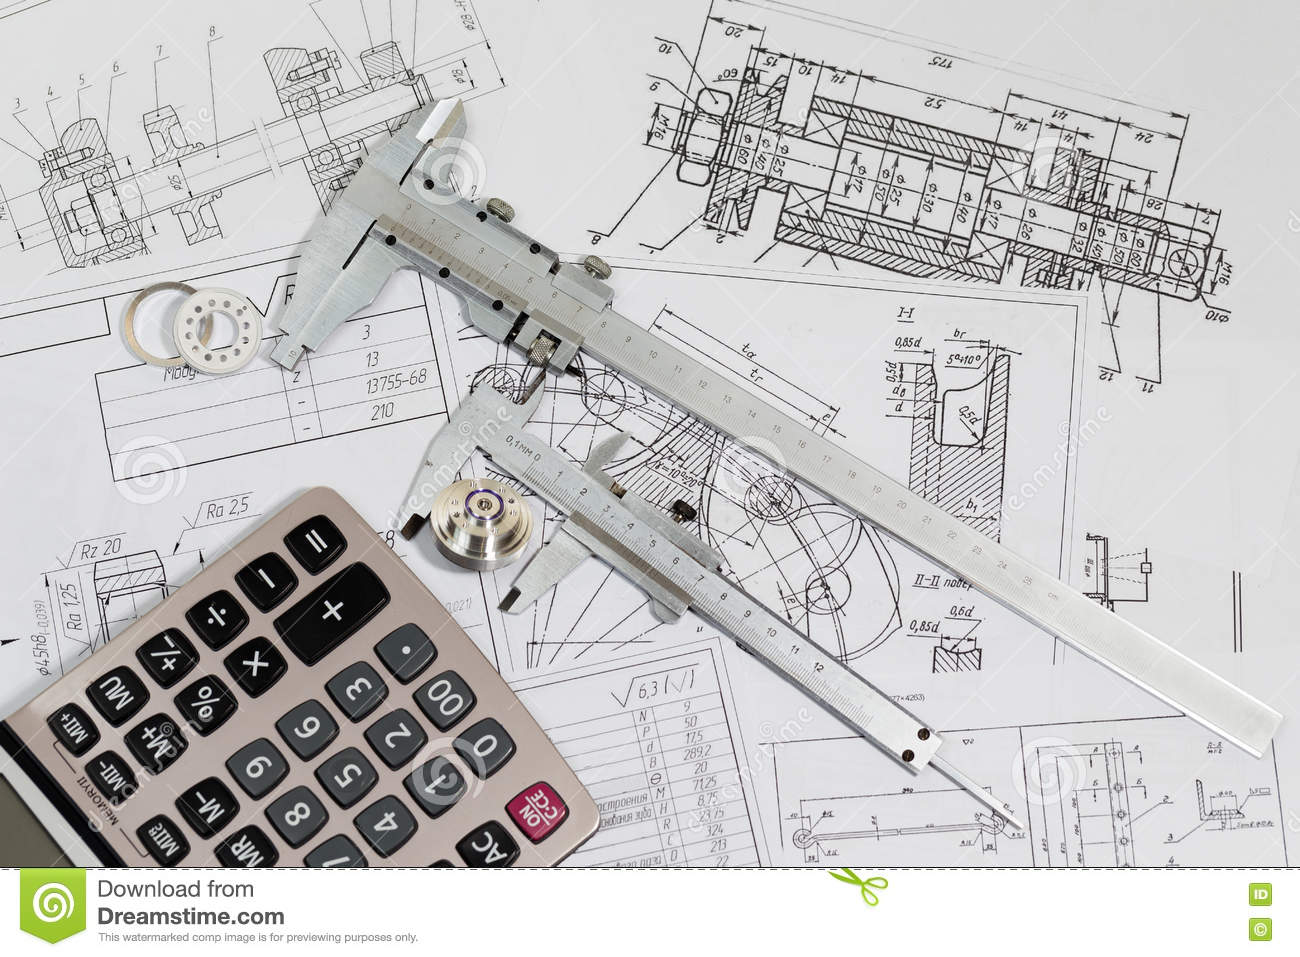 hight resolution of engineering drawings measuring instrument vernier caliper coursework or thesis project project engineer